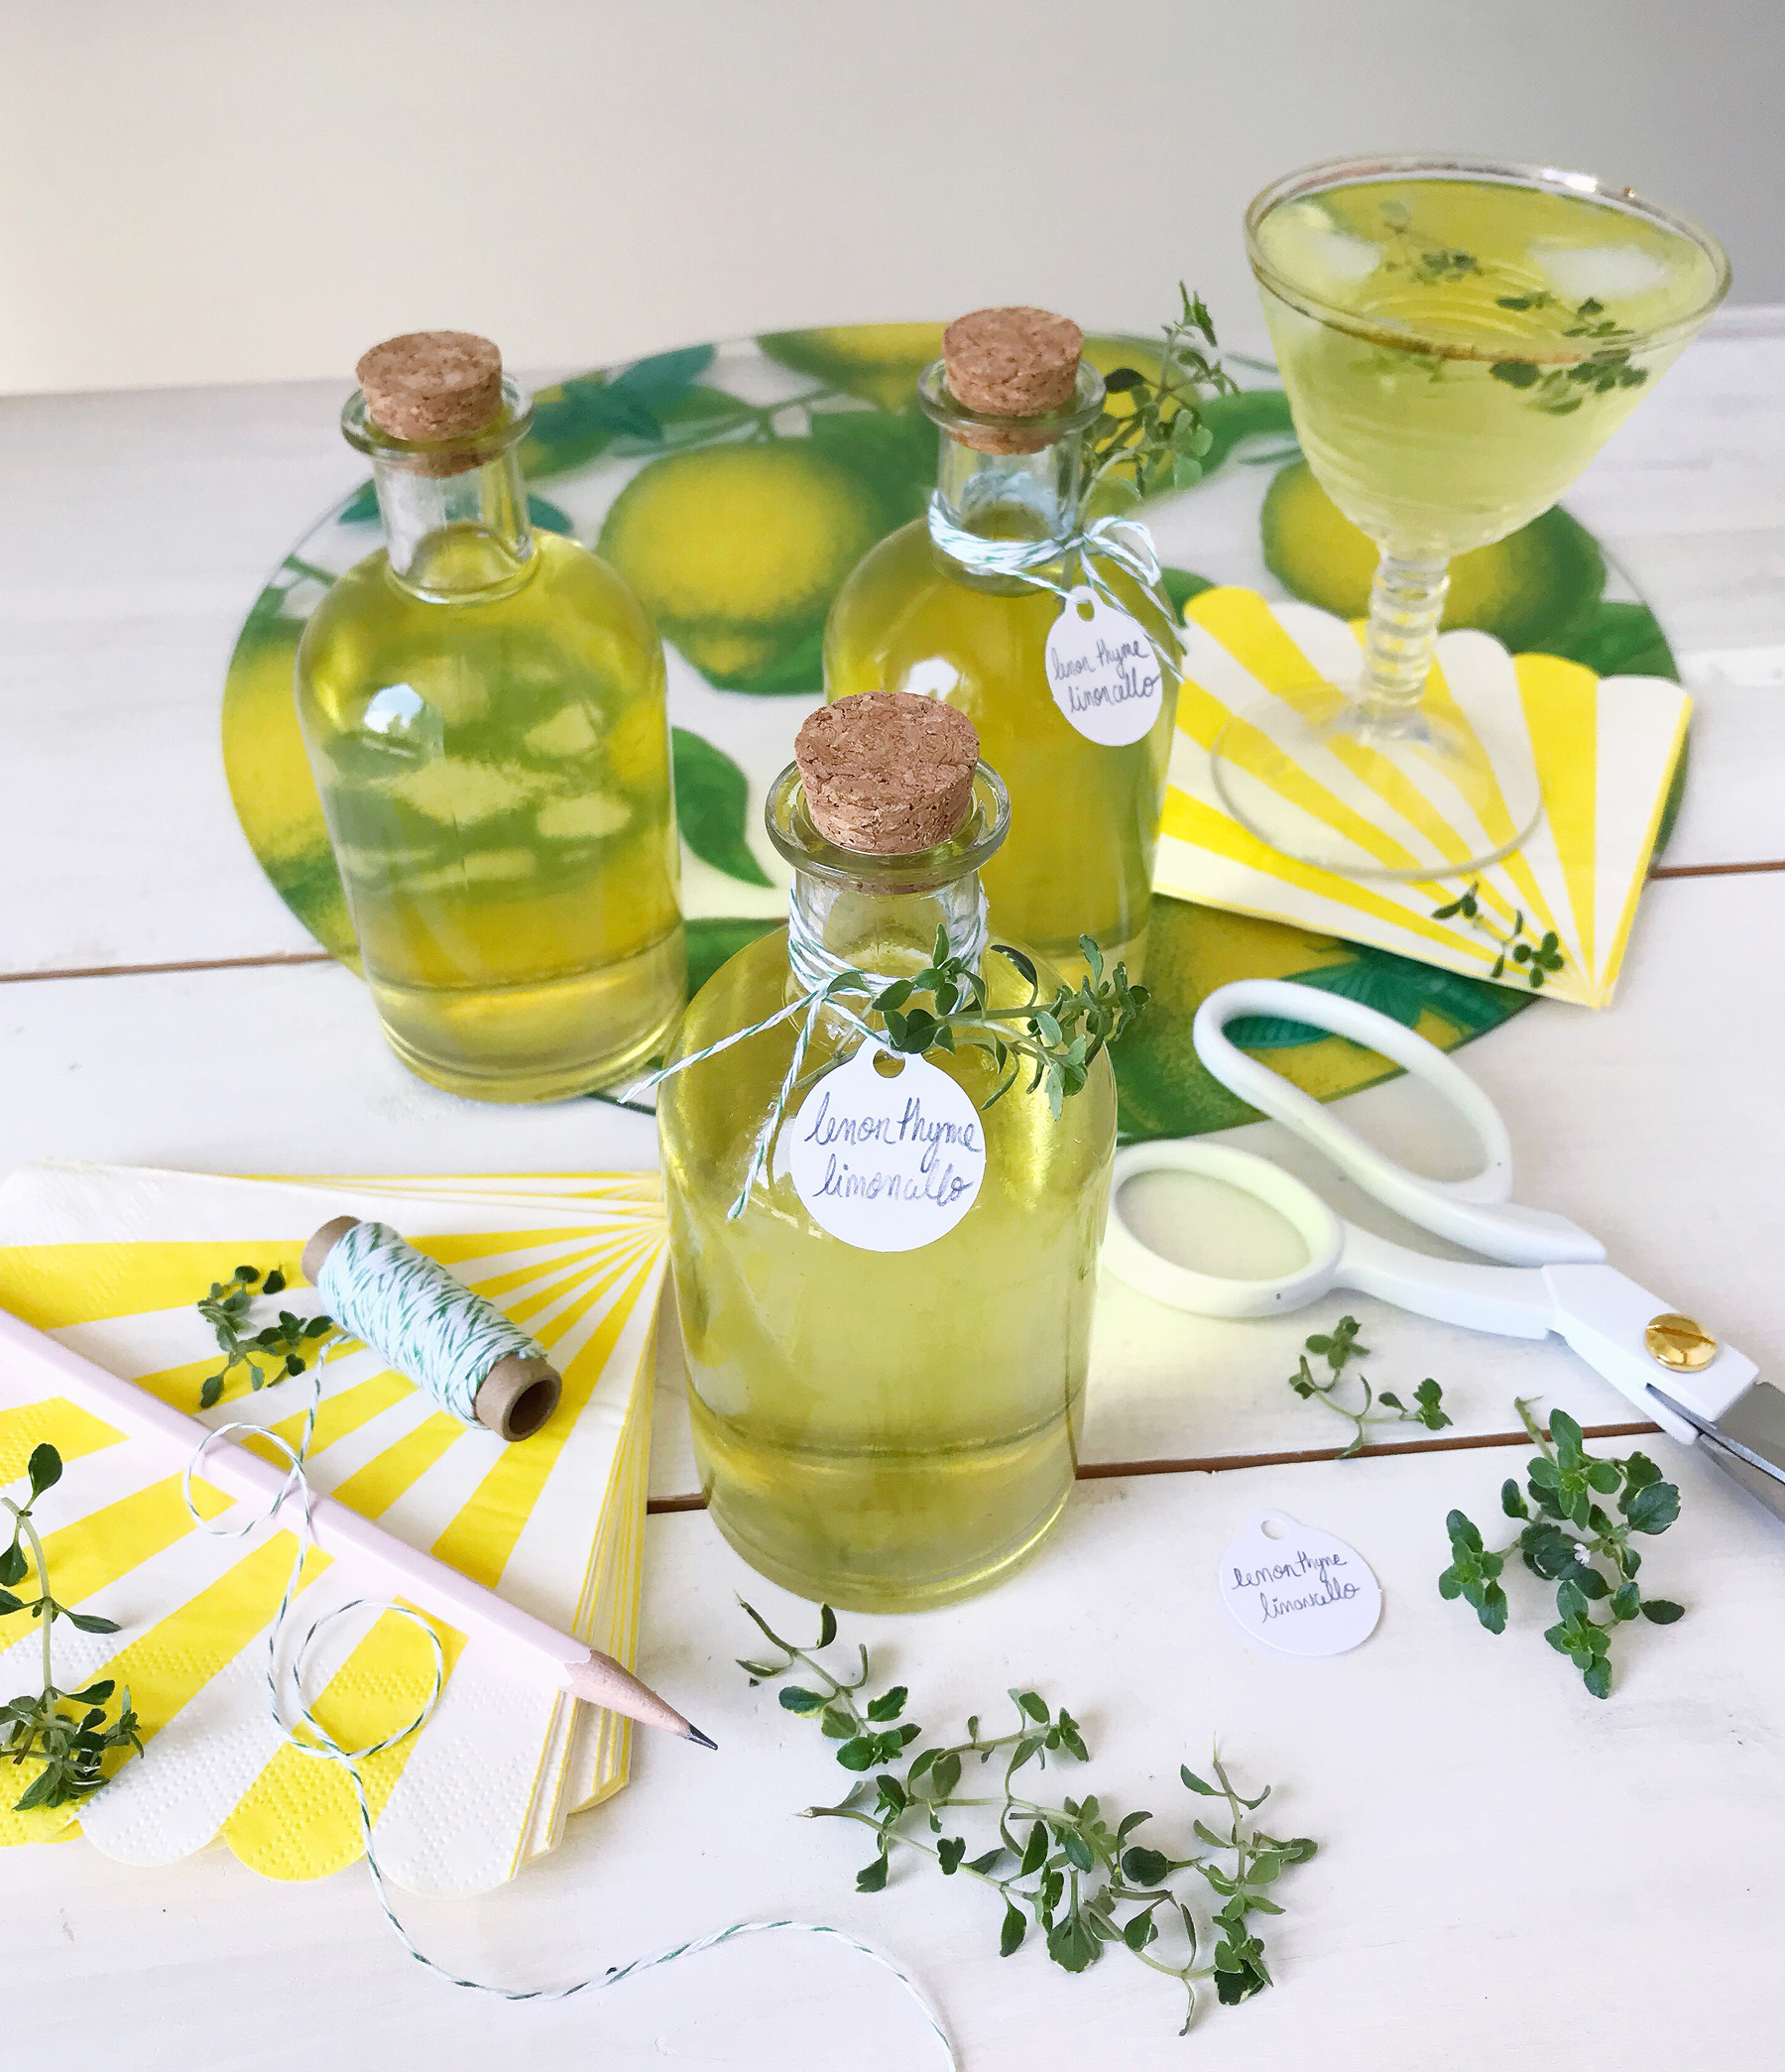 Thyme limoncello hostess gifts domestikatedlife waste you can find it below to diy yourself and the drinks wont go to waste either ill be pouring myself a limoncello and soda spritzer tonight solutioingenieria Choice Image